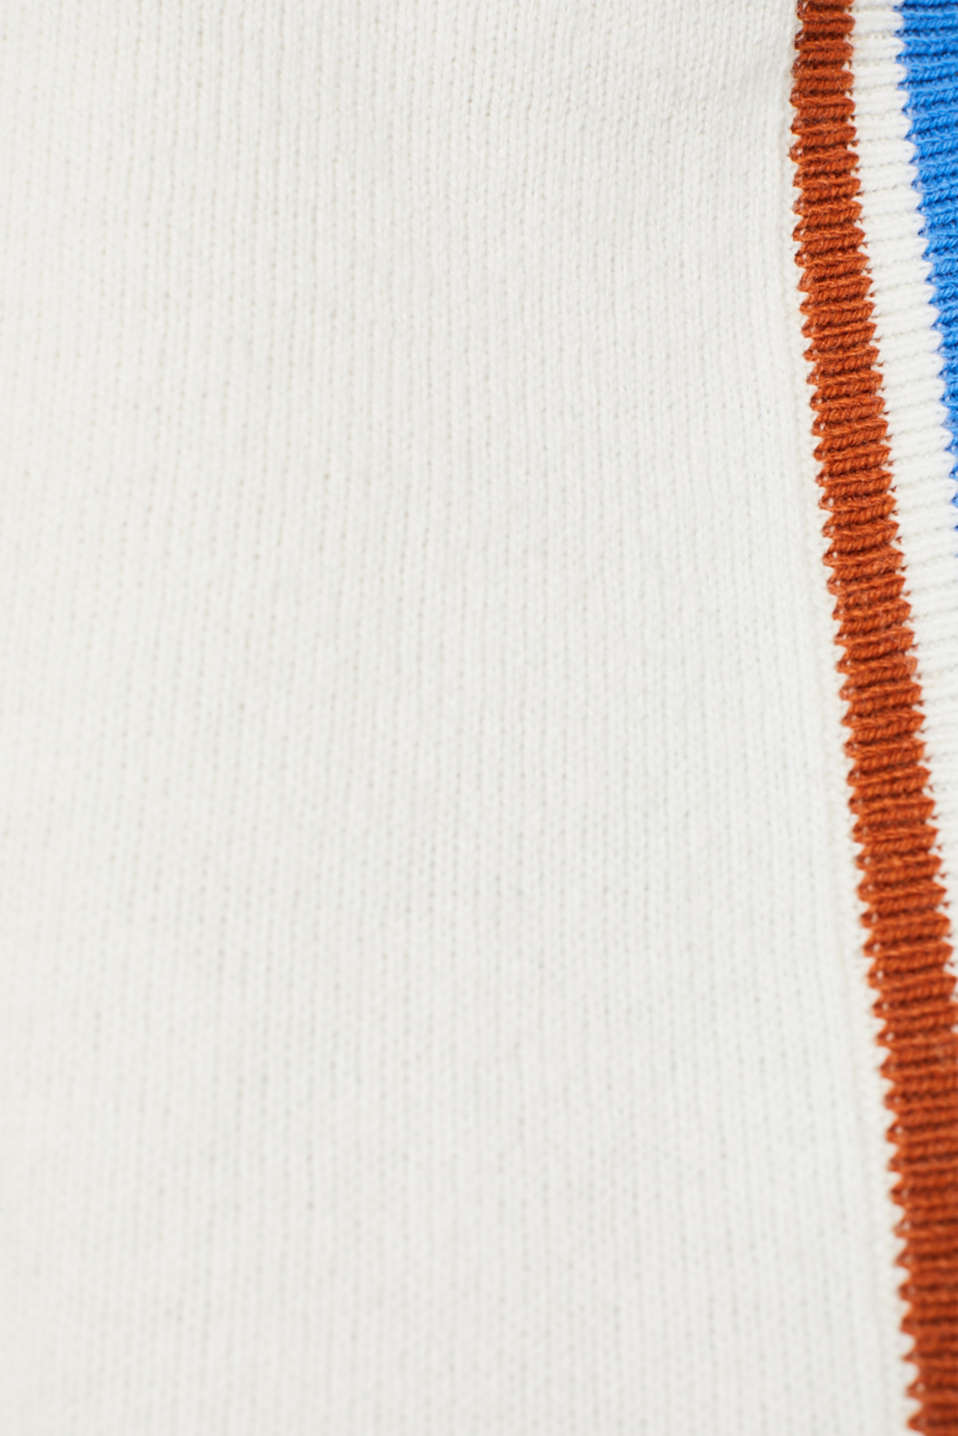 With wool: Stretch jumper with stripes, OFF WHITE 2, detail image number 4